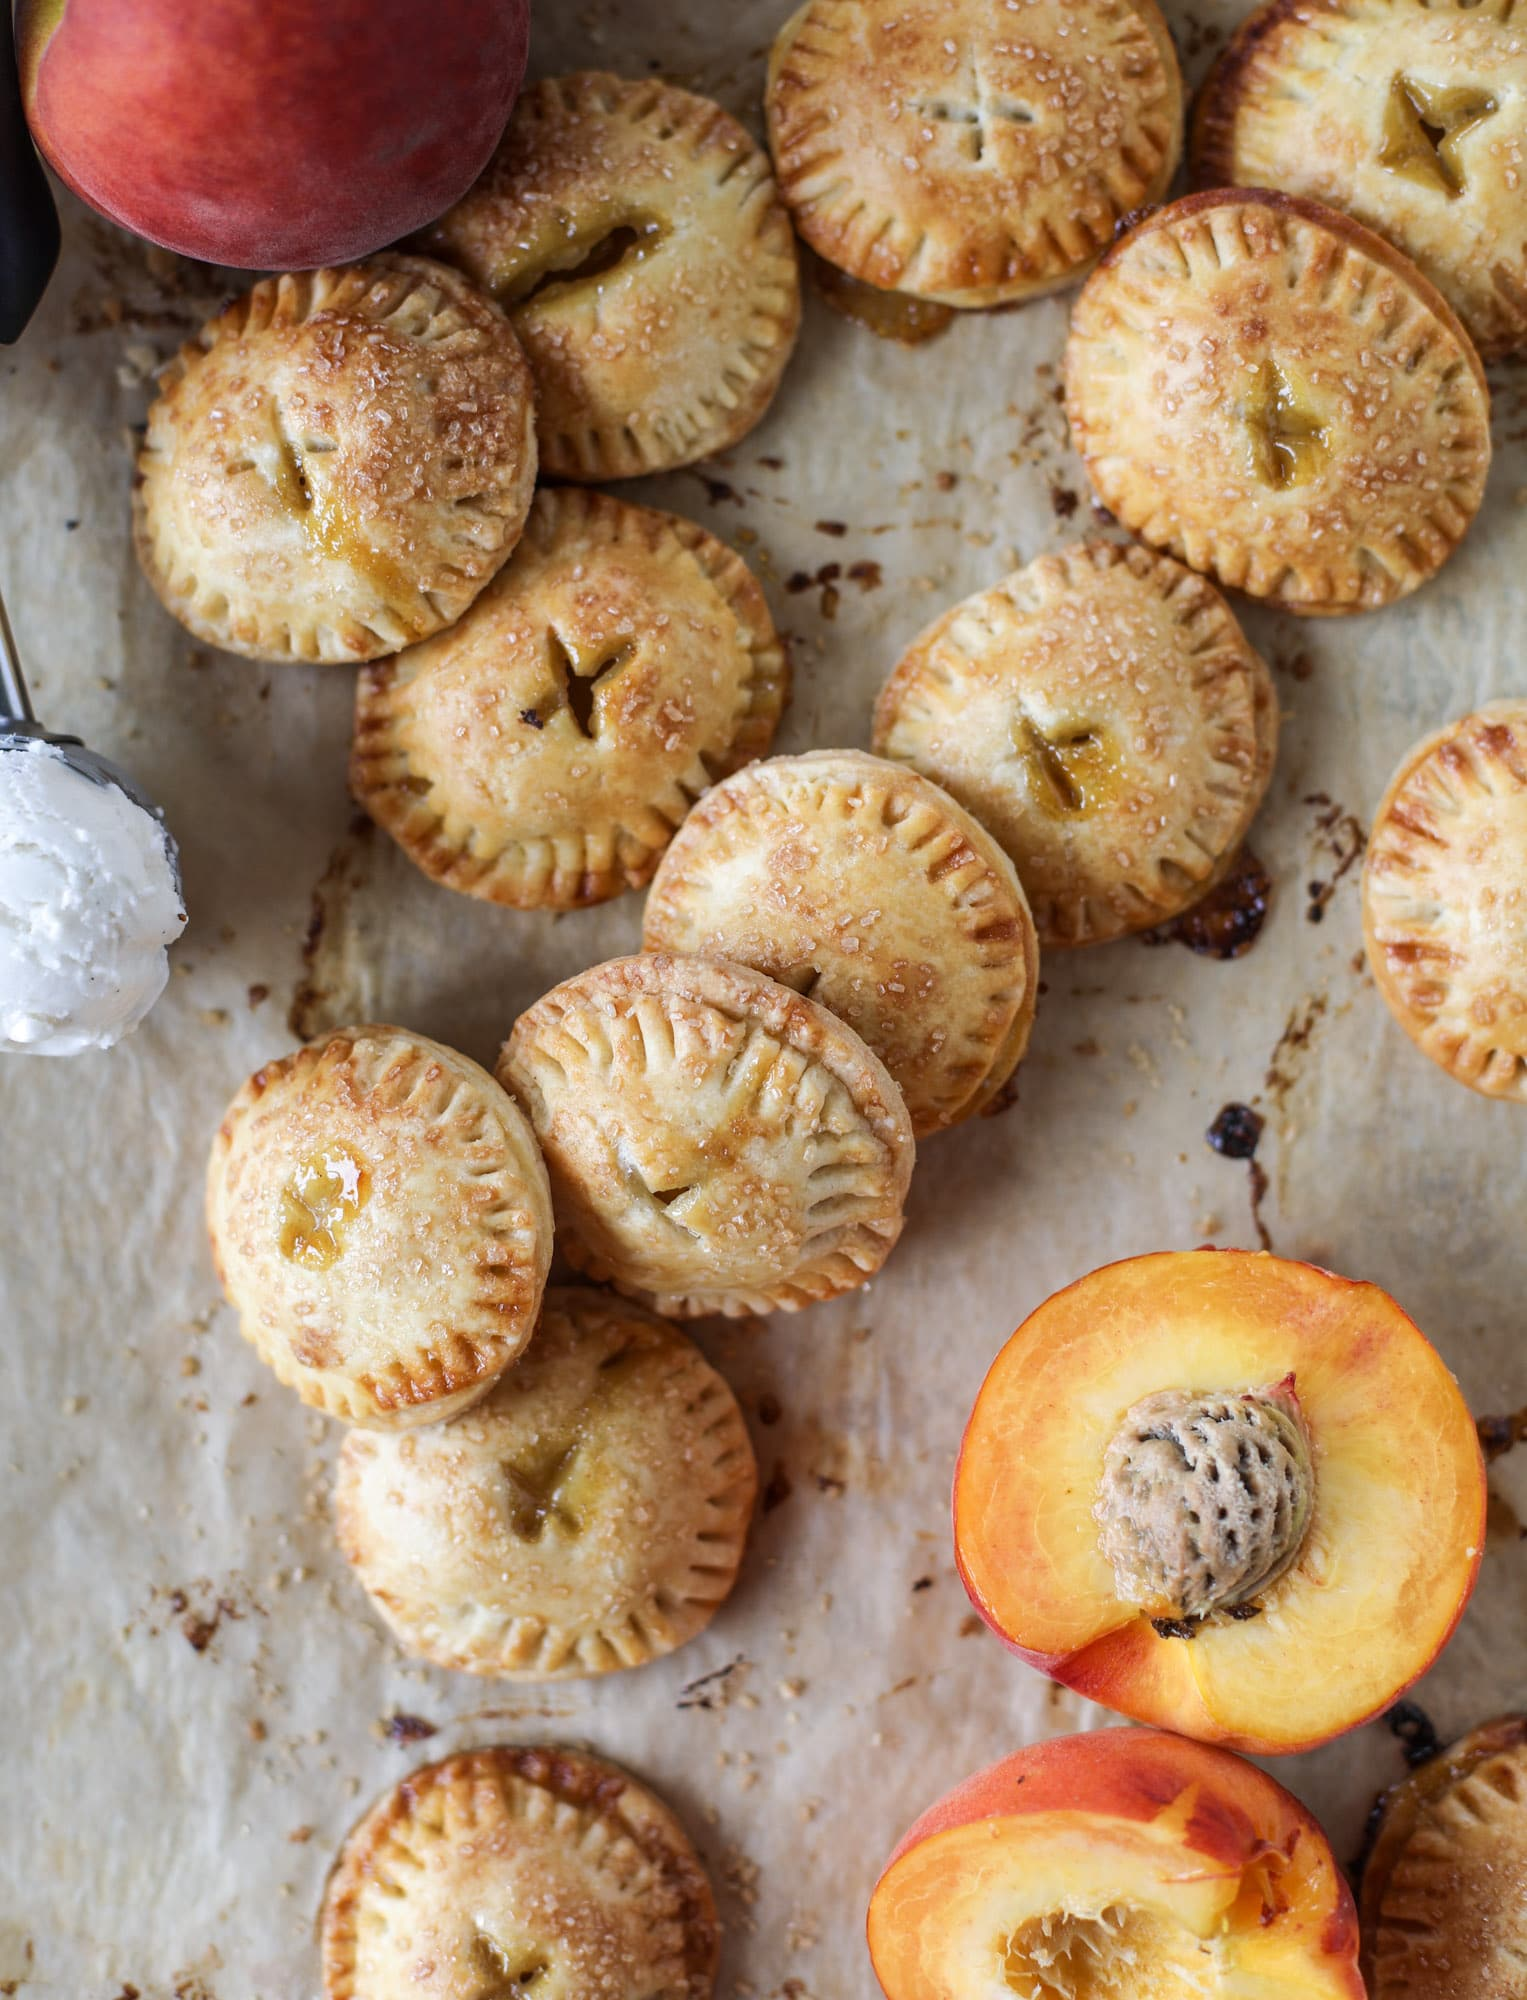 These little peach hand pies are super easy to make and oh-so delicious for summer! A warm and syrupy homemade peach filling made with brown sugar and bourbon, stuck inside a flakey all-butter crust and sprinkled with coarse sugar. SO GOOD. I howsweeteats.com #peach #hand #pies #mini #dessert #summer